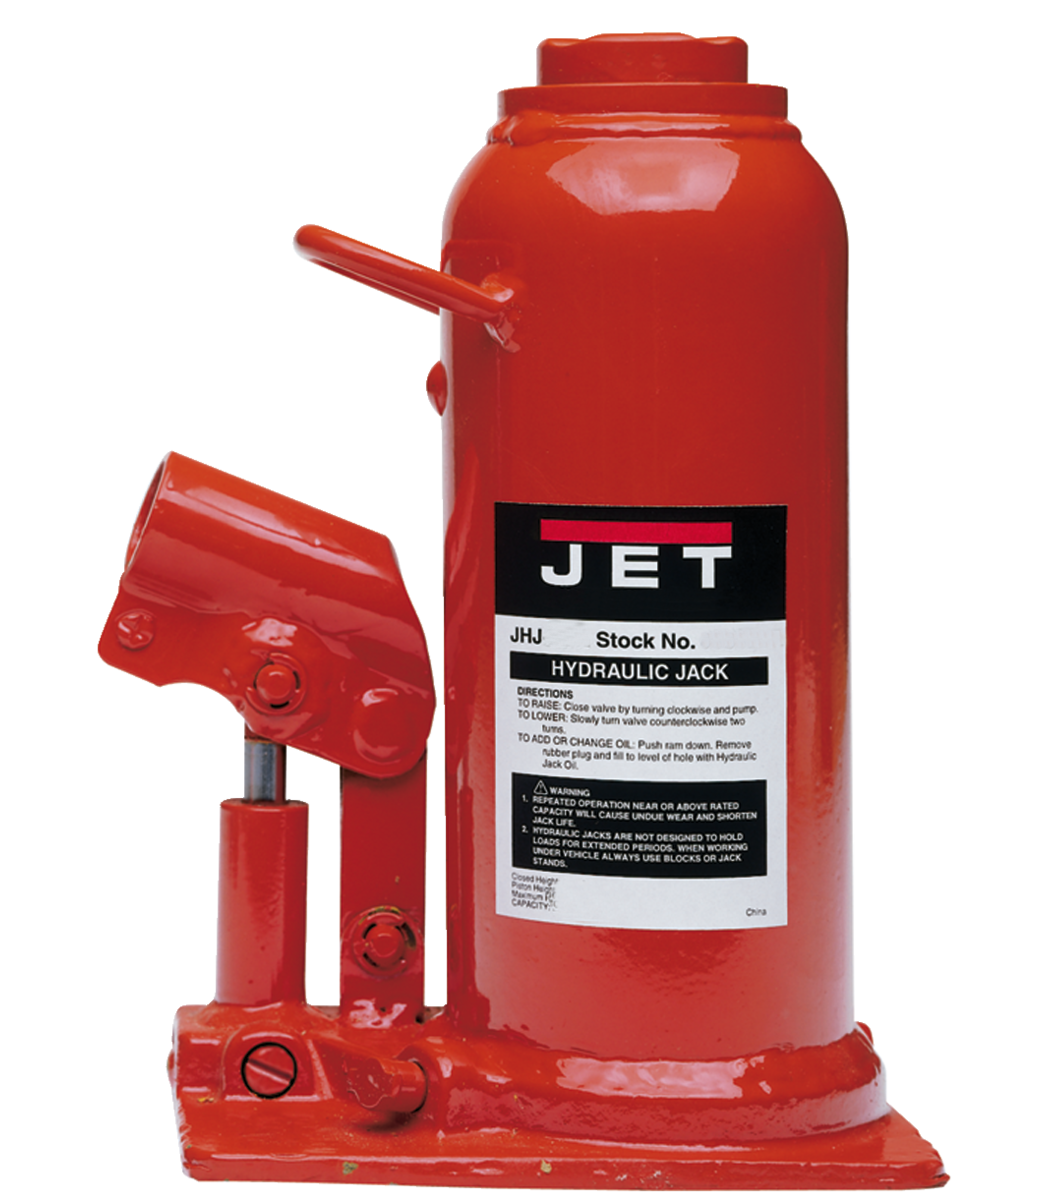 JHJ-12-1/2, 12-1/2-Ton Hydraulic Bottle Jack